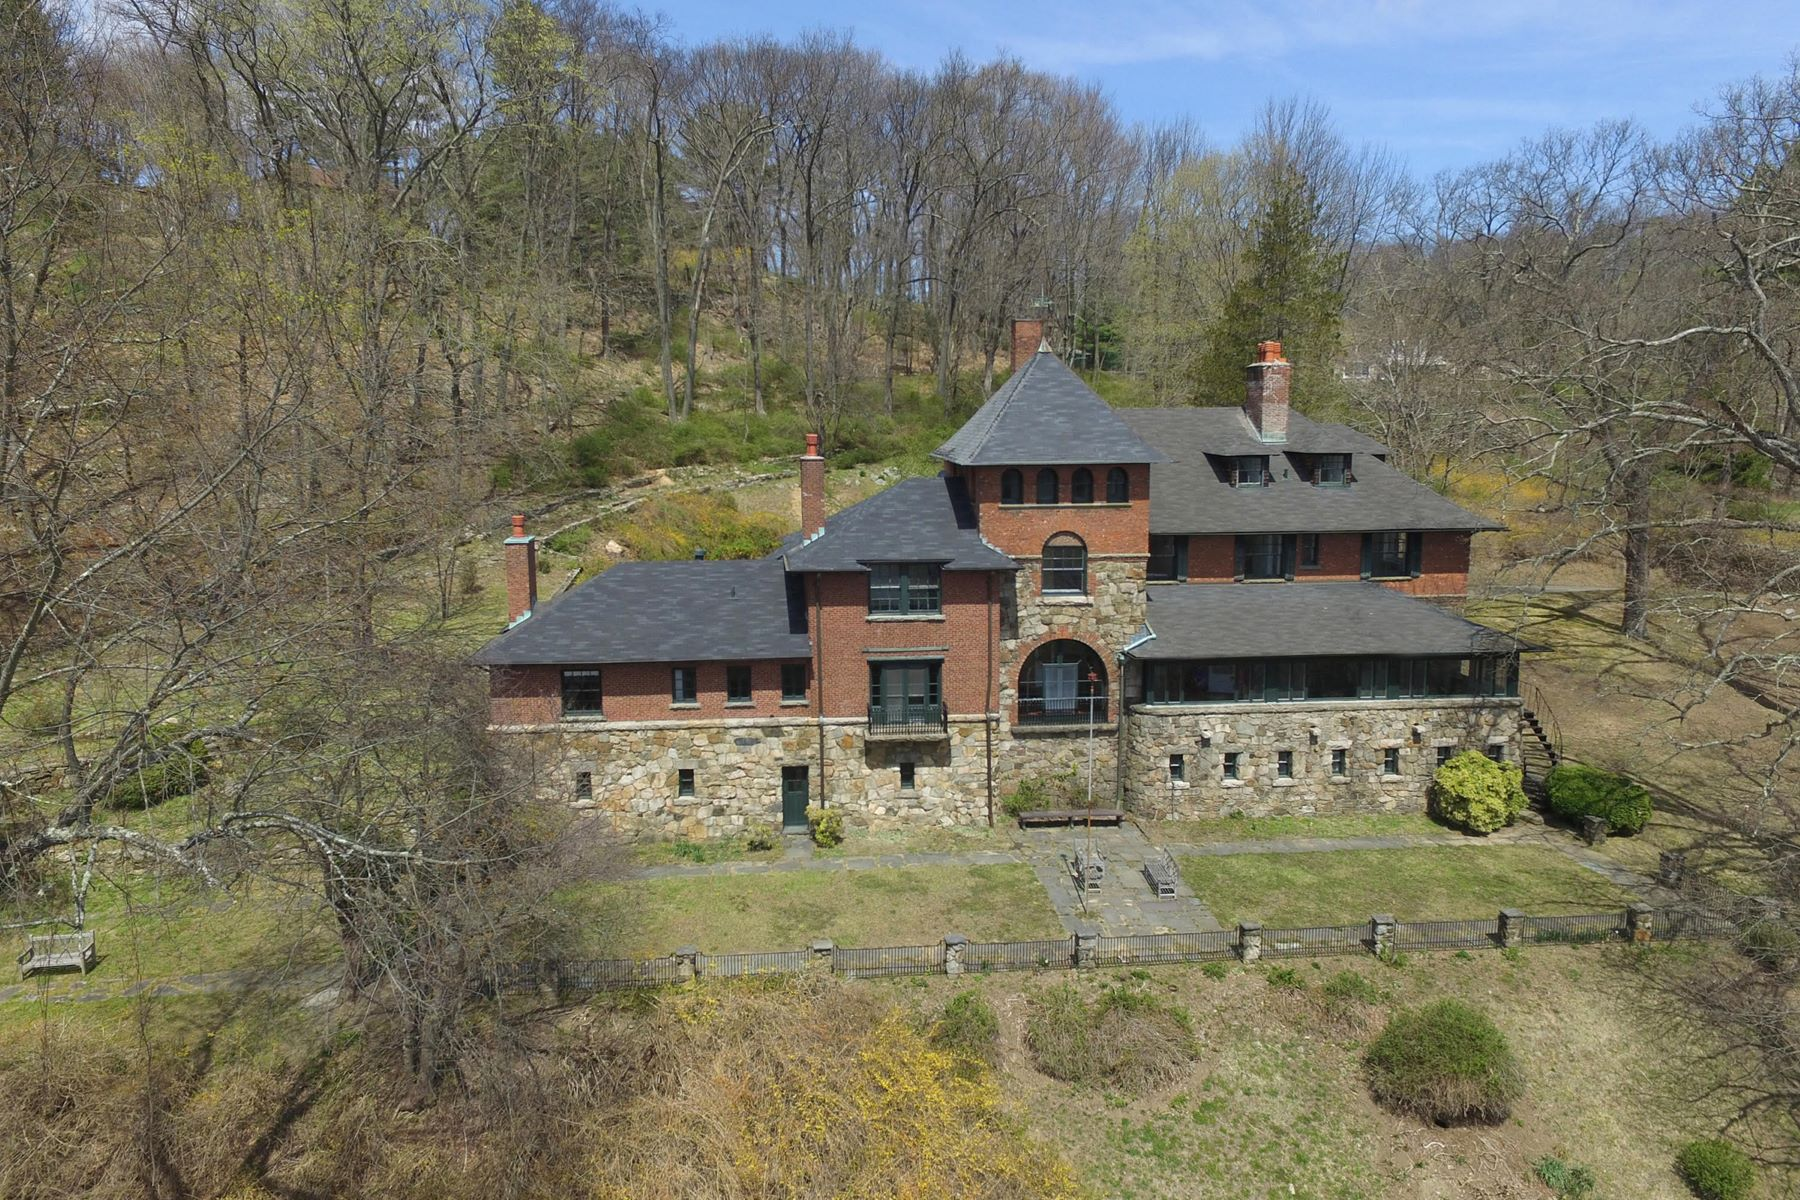 Single Family Home for Sale at Historic TB Baldwin Estate 15 Summit Rd Tuxedo Park, New York, 10987 United States